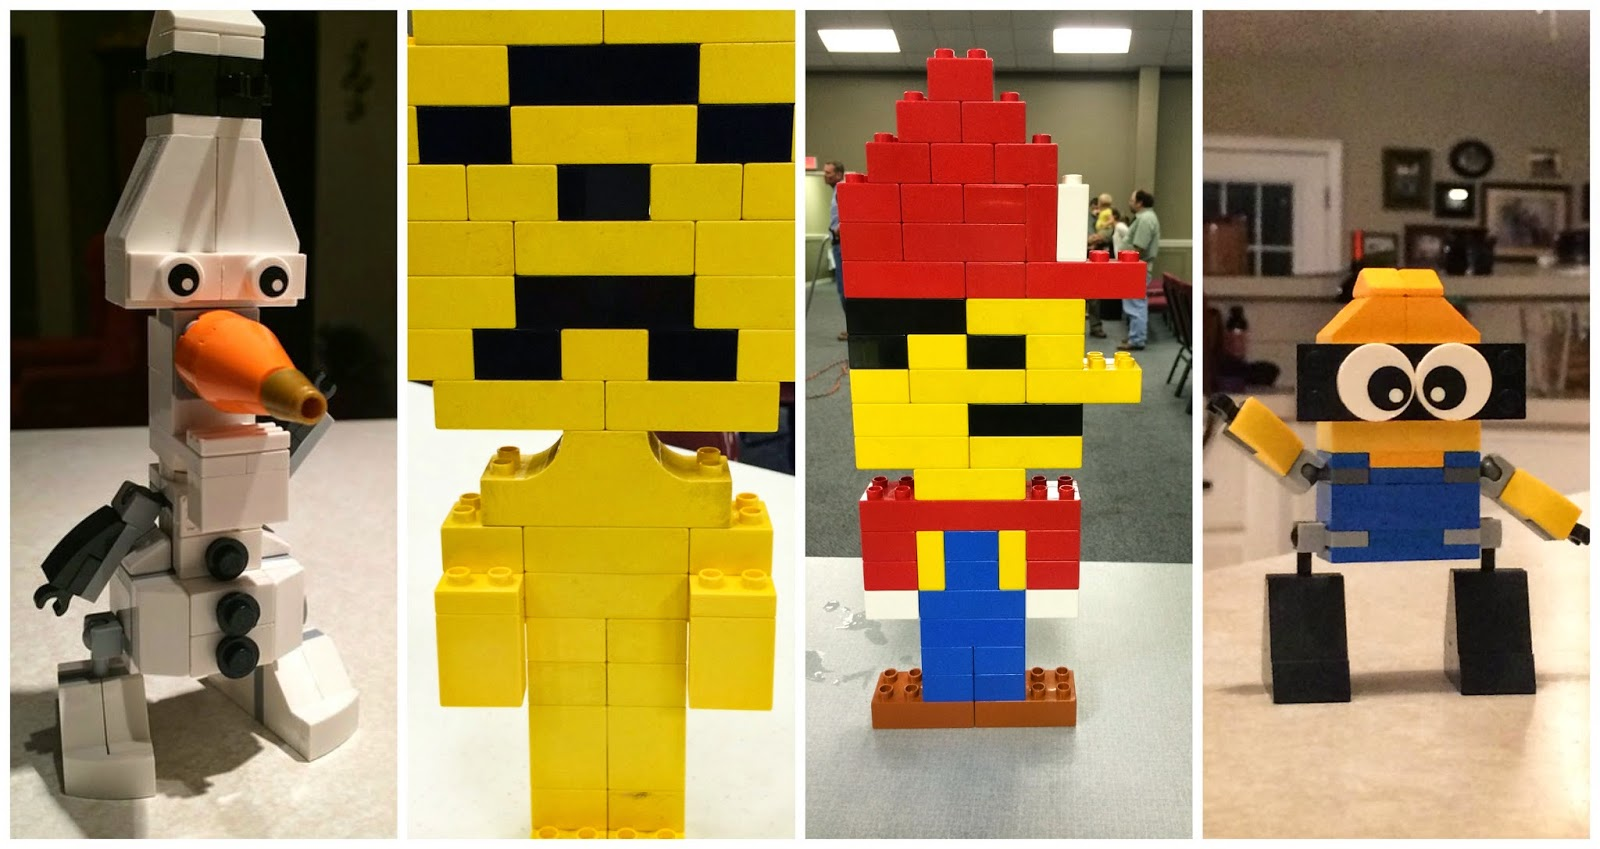 Sam's_World_Autism_Lego_Creations_Olaf_Grumpy_Cat_Mario_Minions